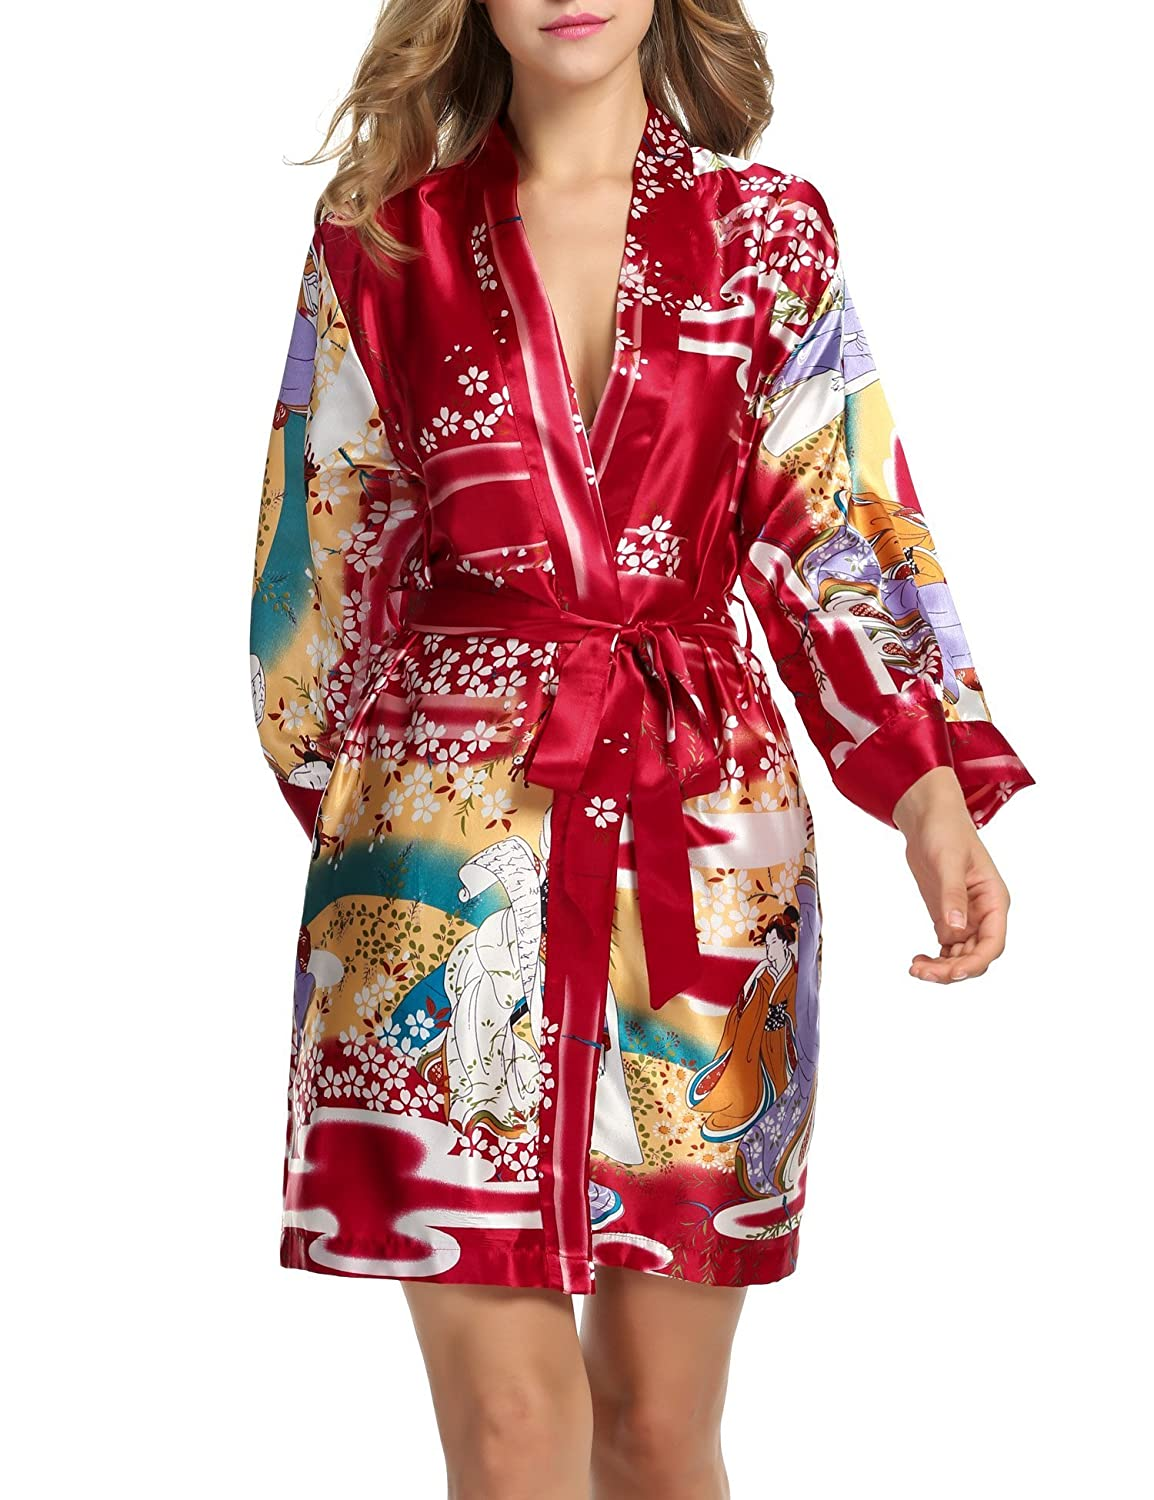 HOTOUCH Women's Lightweight Breathable Kimono Robe Short, With Pockets 3 Color M-XXL AMK005067_R_XL